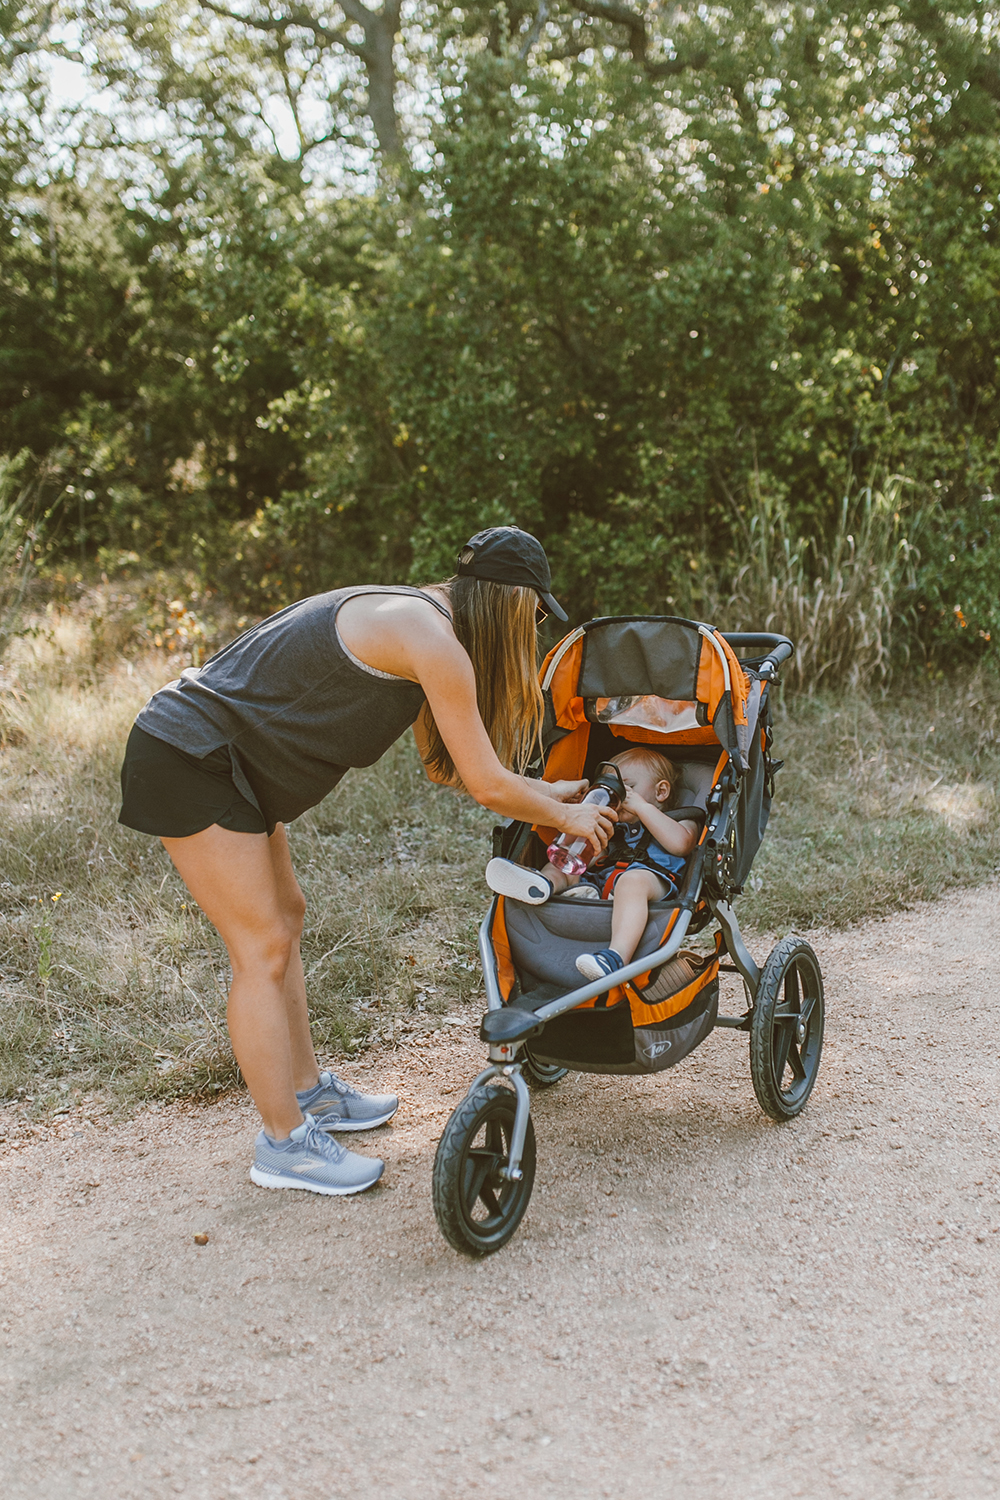 livvyland-blog-olivia-watson-austin-texas-lifestyle-mom-blogger-pregnant-jogging-stroller-gear-backcountry-6